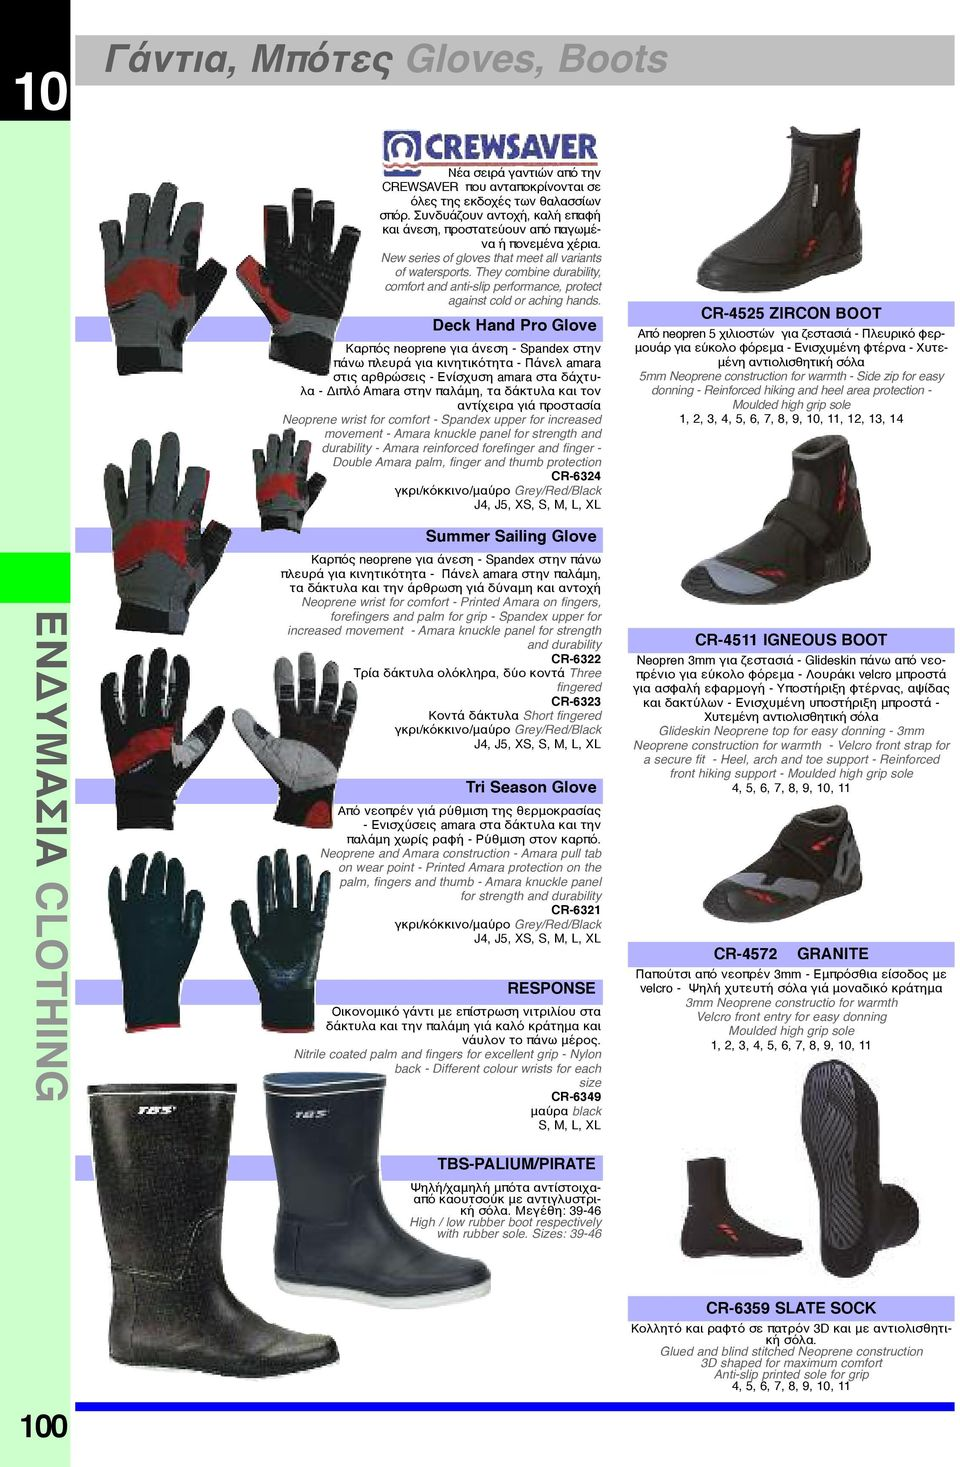 They combine durability, comfort and anti-slip performance, protect against cold or aching hands.